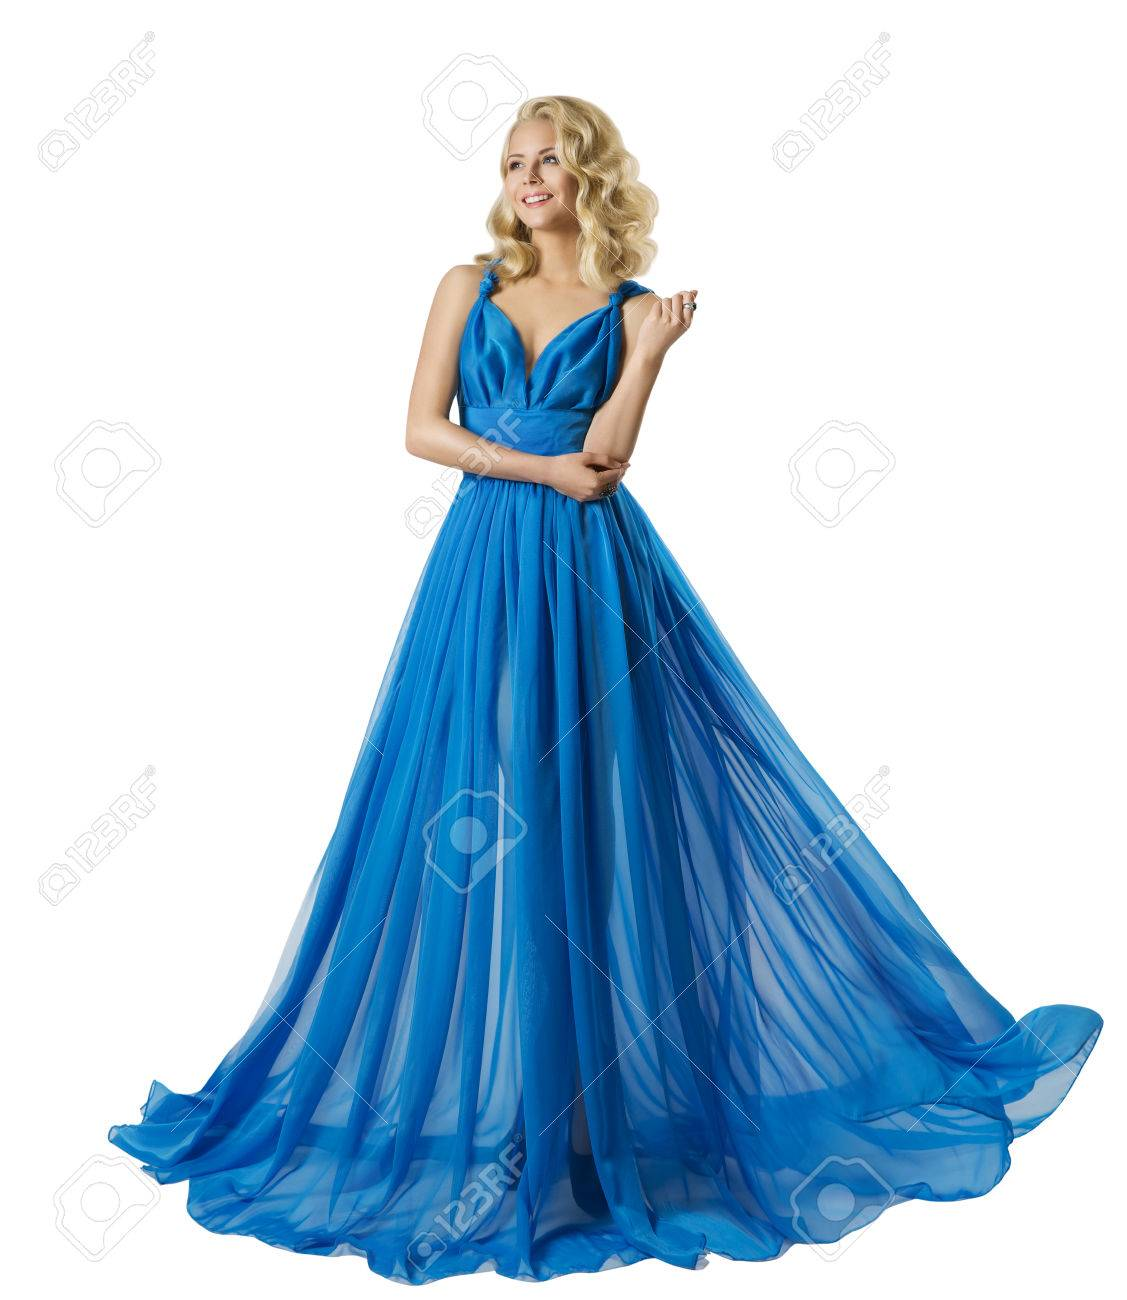 Woman Fashion Long Prom Dress, Elegant Girl In Ball Gown, Blue ...